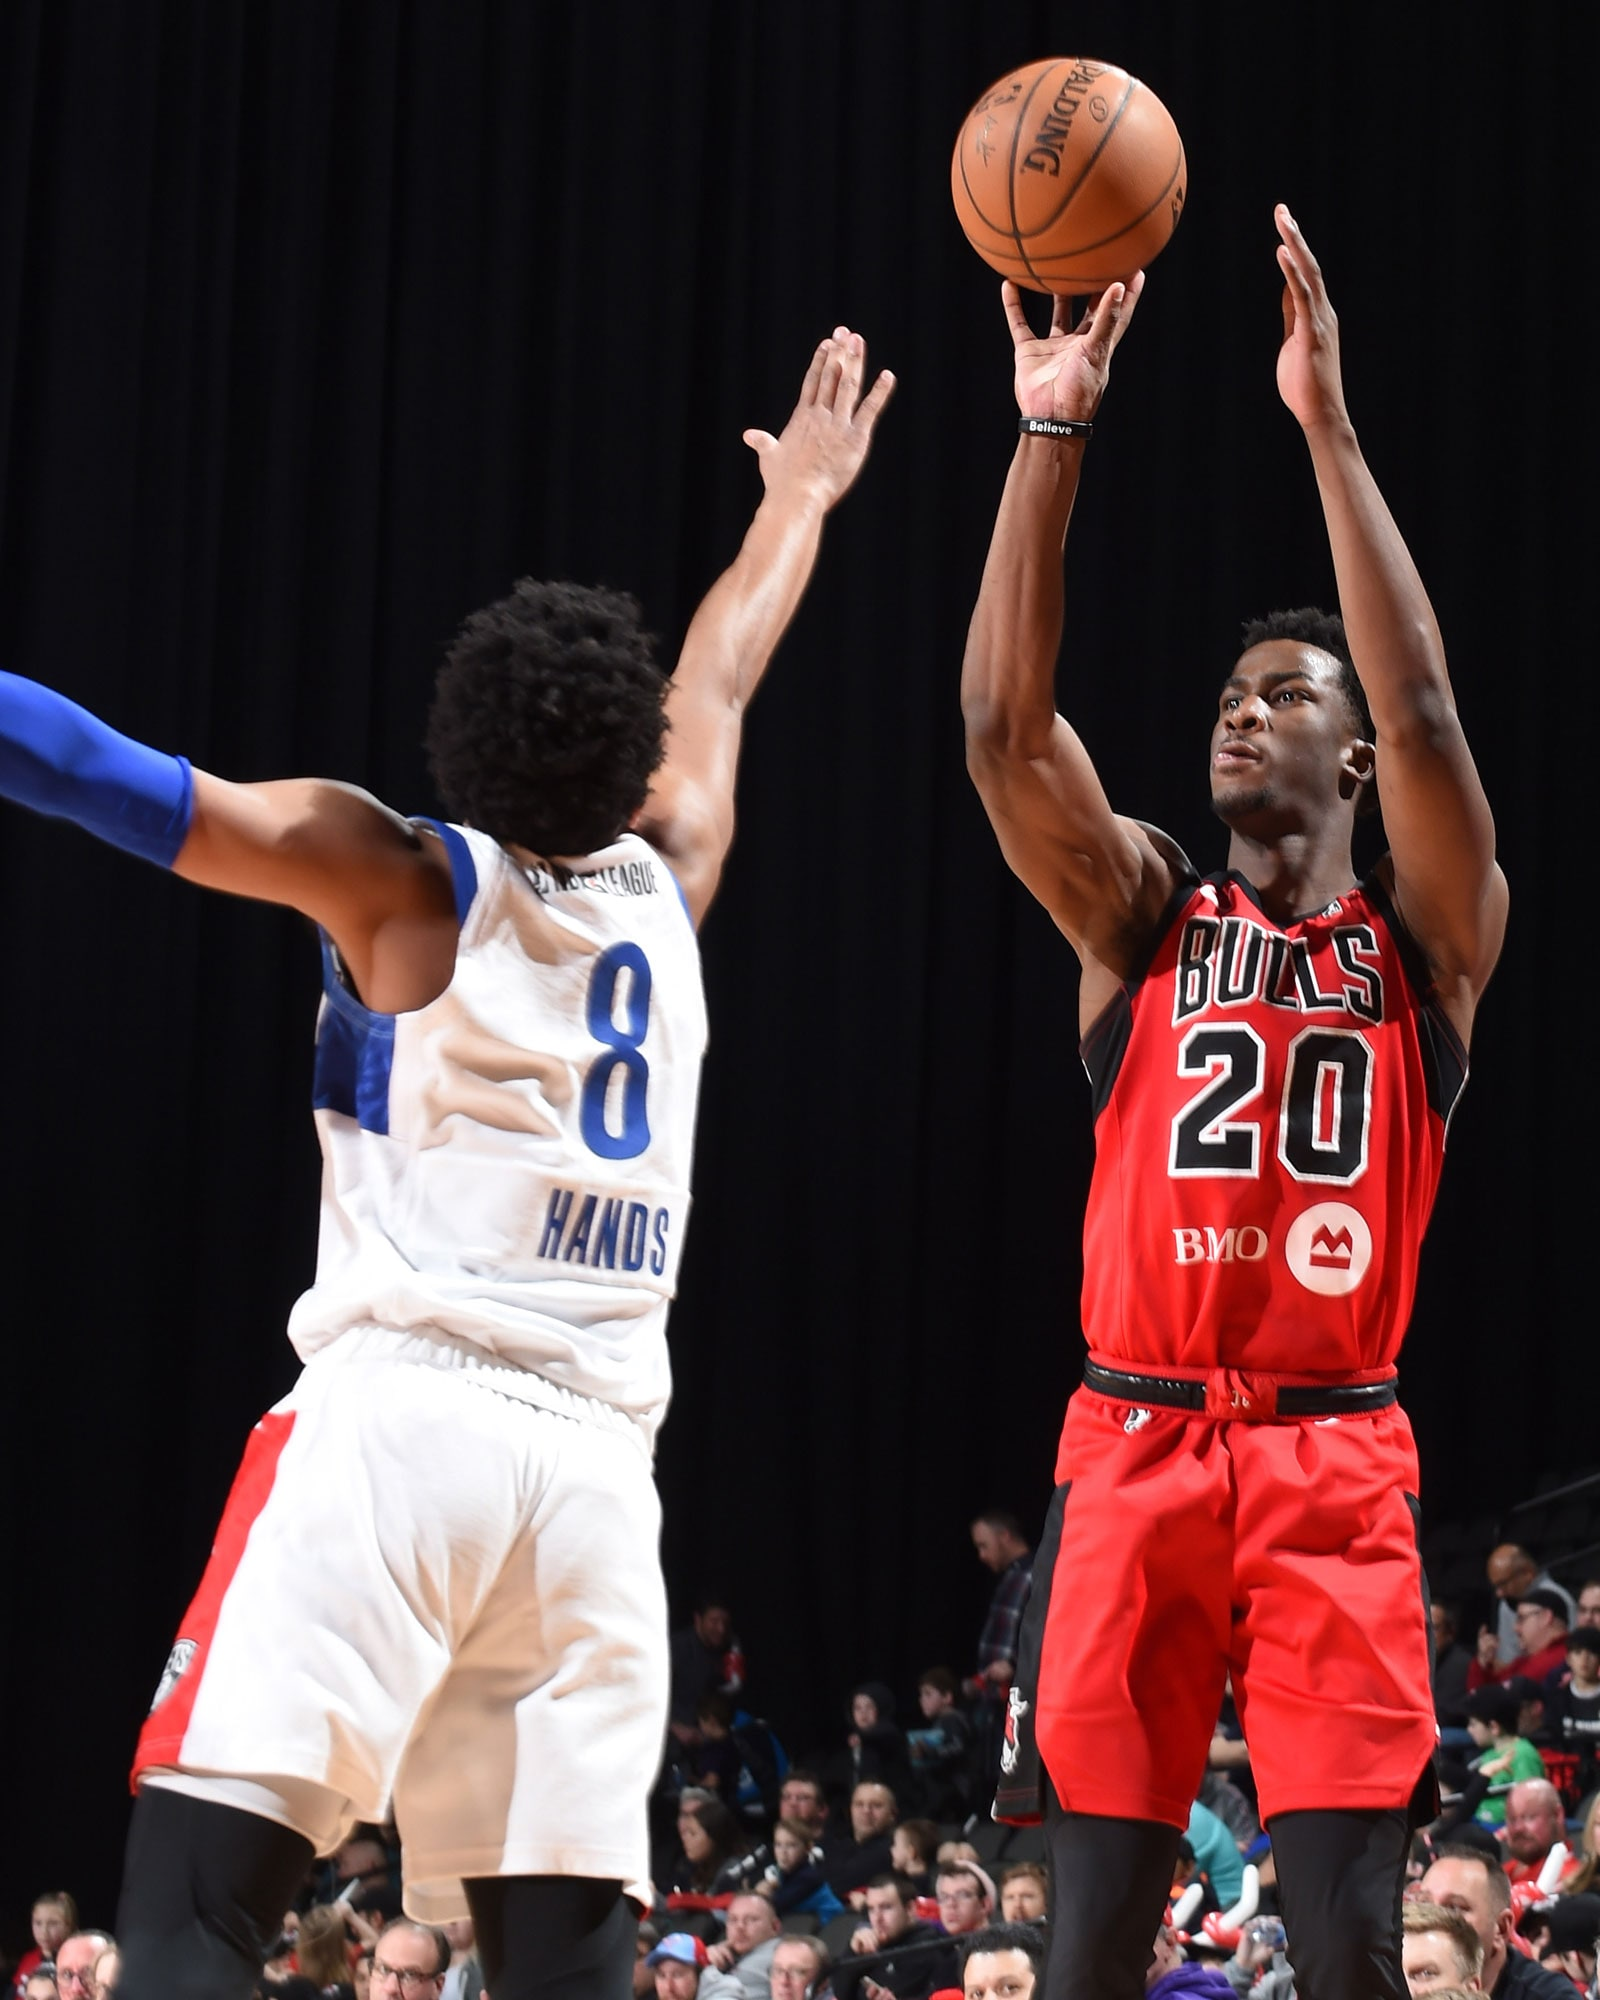 Adam Mokoka shoots the ball for the Windy City Bulls, the night following his 15 point performance against the Pelicans.